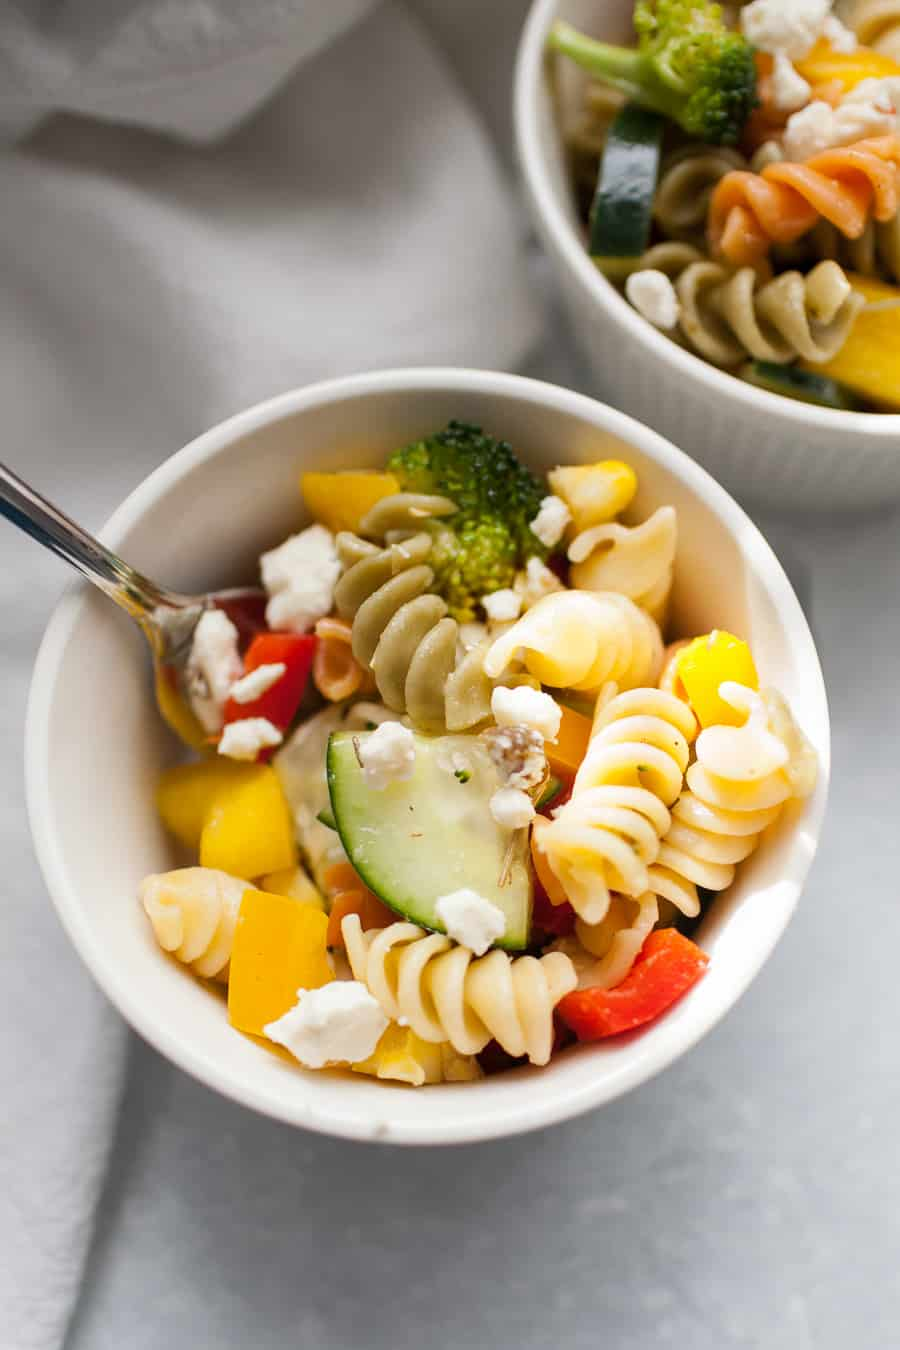 Veggie packed pasta salad is a perfect side dish for any occasion. It's great for the warmer weather for potlucks outside and perfect for brightening the colder months, too! The pasta salad is made with a mayo-free dressing and packed with vegetables like cucumbers, bell peppers, tomatoes, corn and topped with feta cheese.